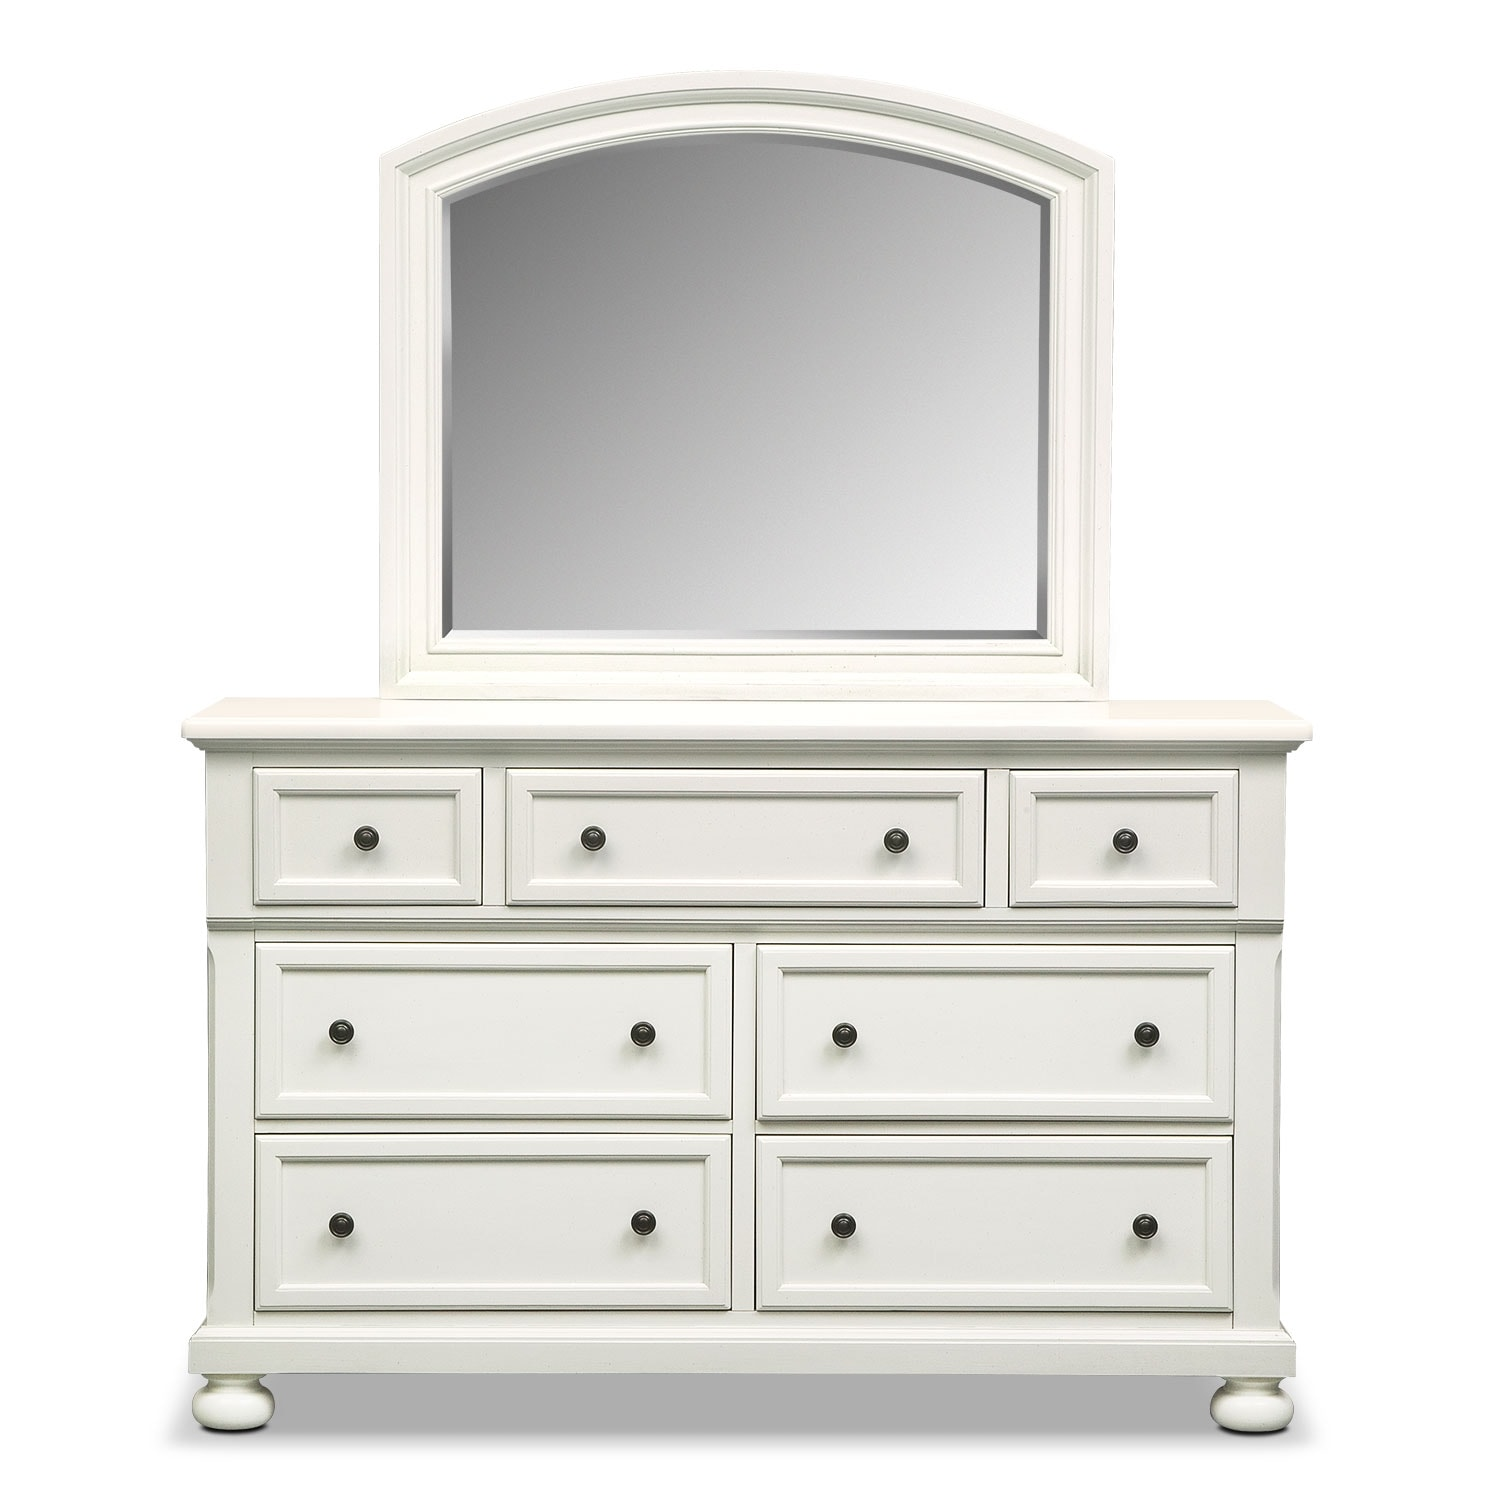 of size white drawer dressers amp bedroom p chests chest home essential belmont lightweight dresser furniture blake large